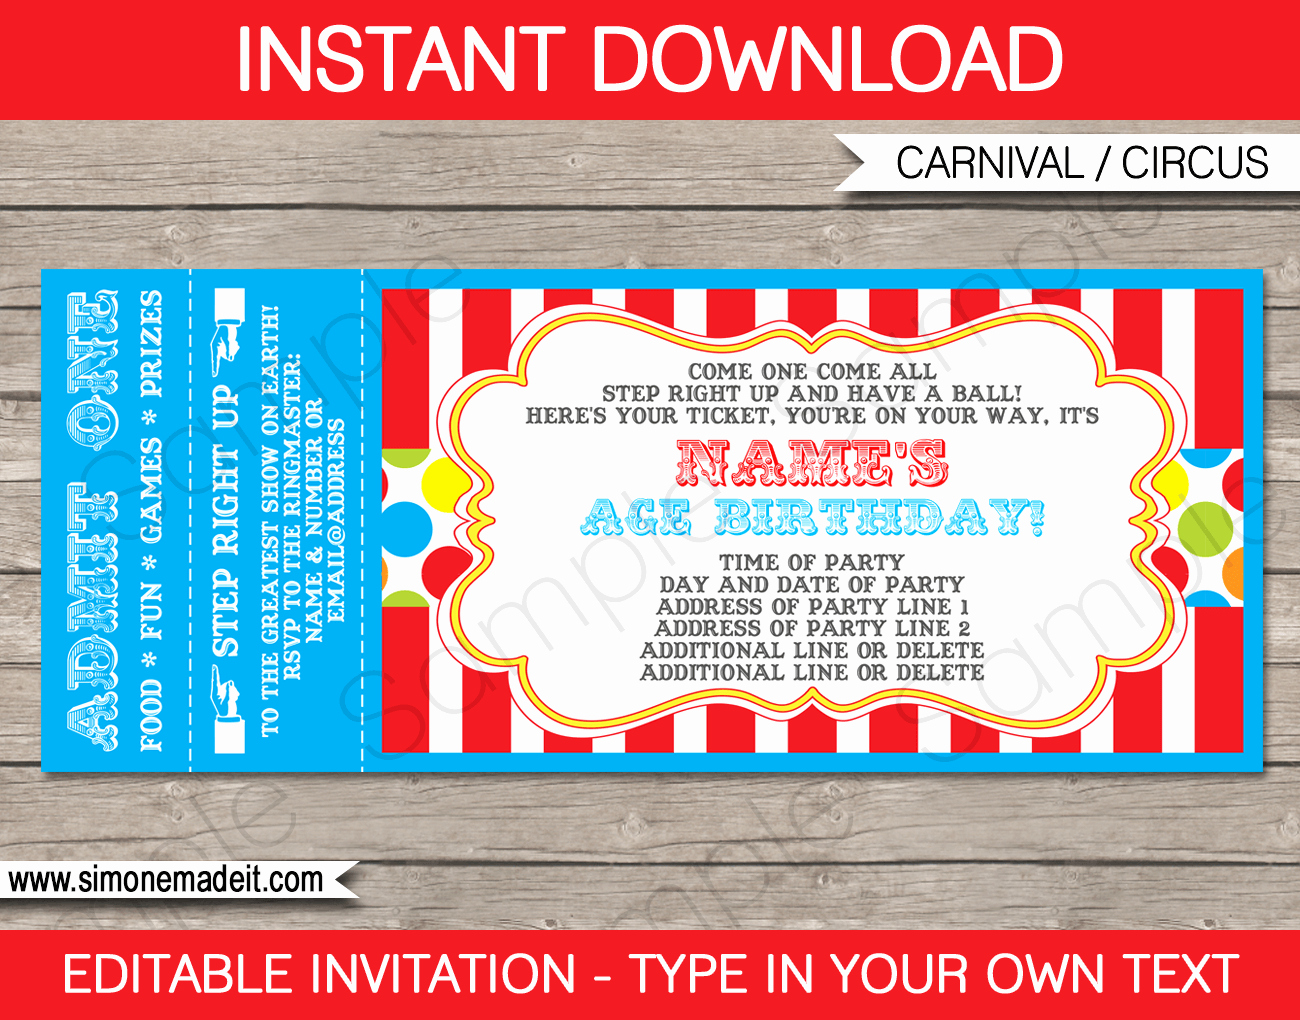 Concert Tickets Template Free Download Awesome Carnival Party Ticket Invitation Template